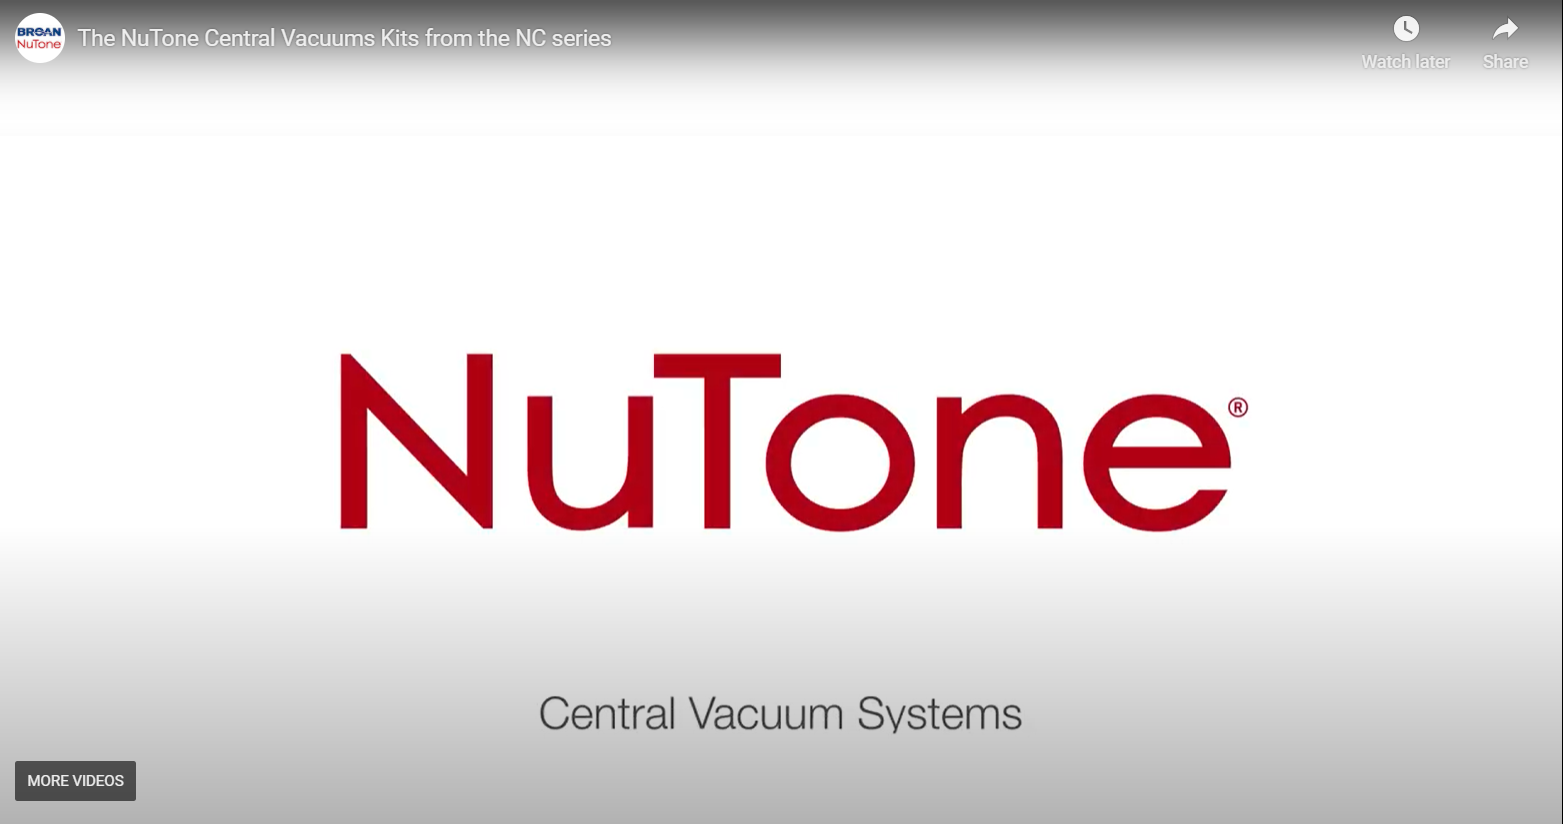 The NuTone Central Vacuums Kits from the NC series